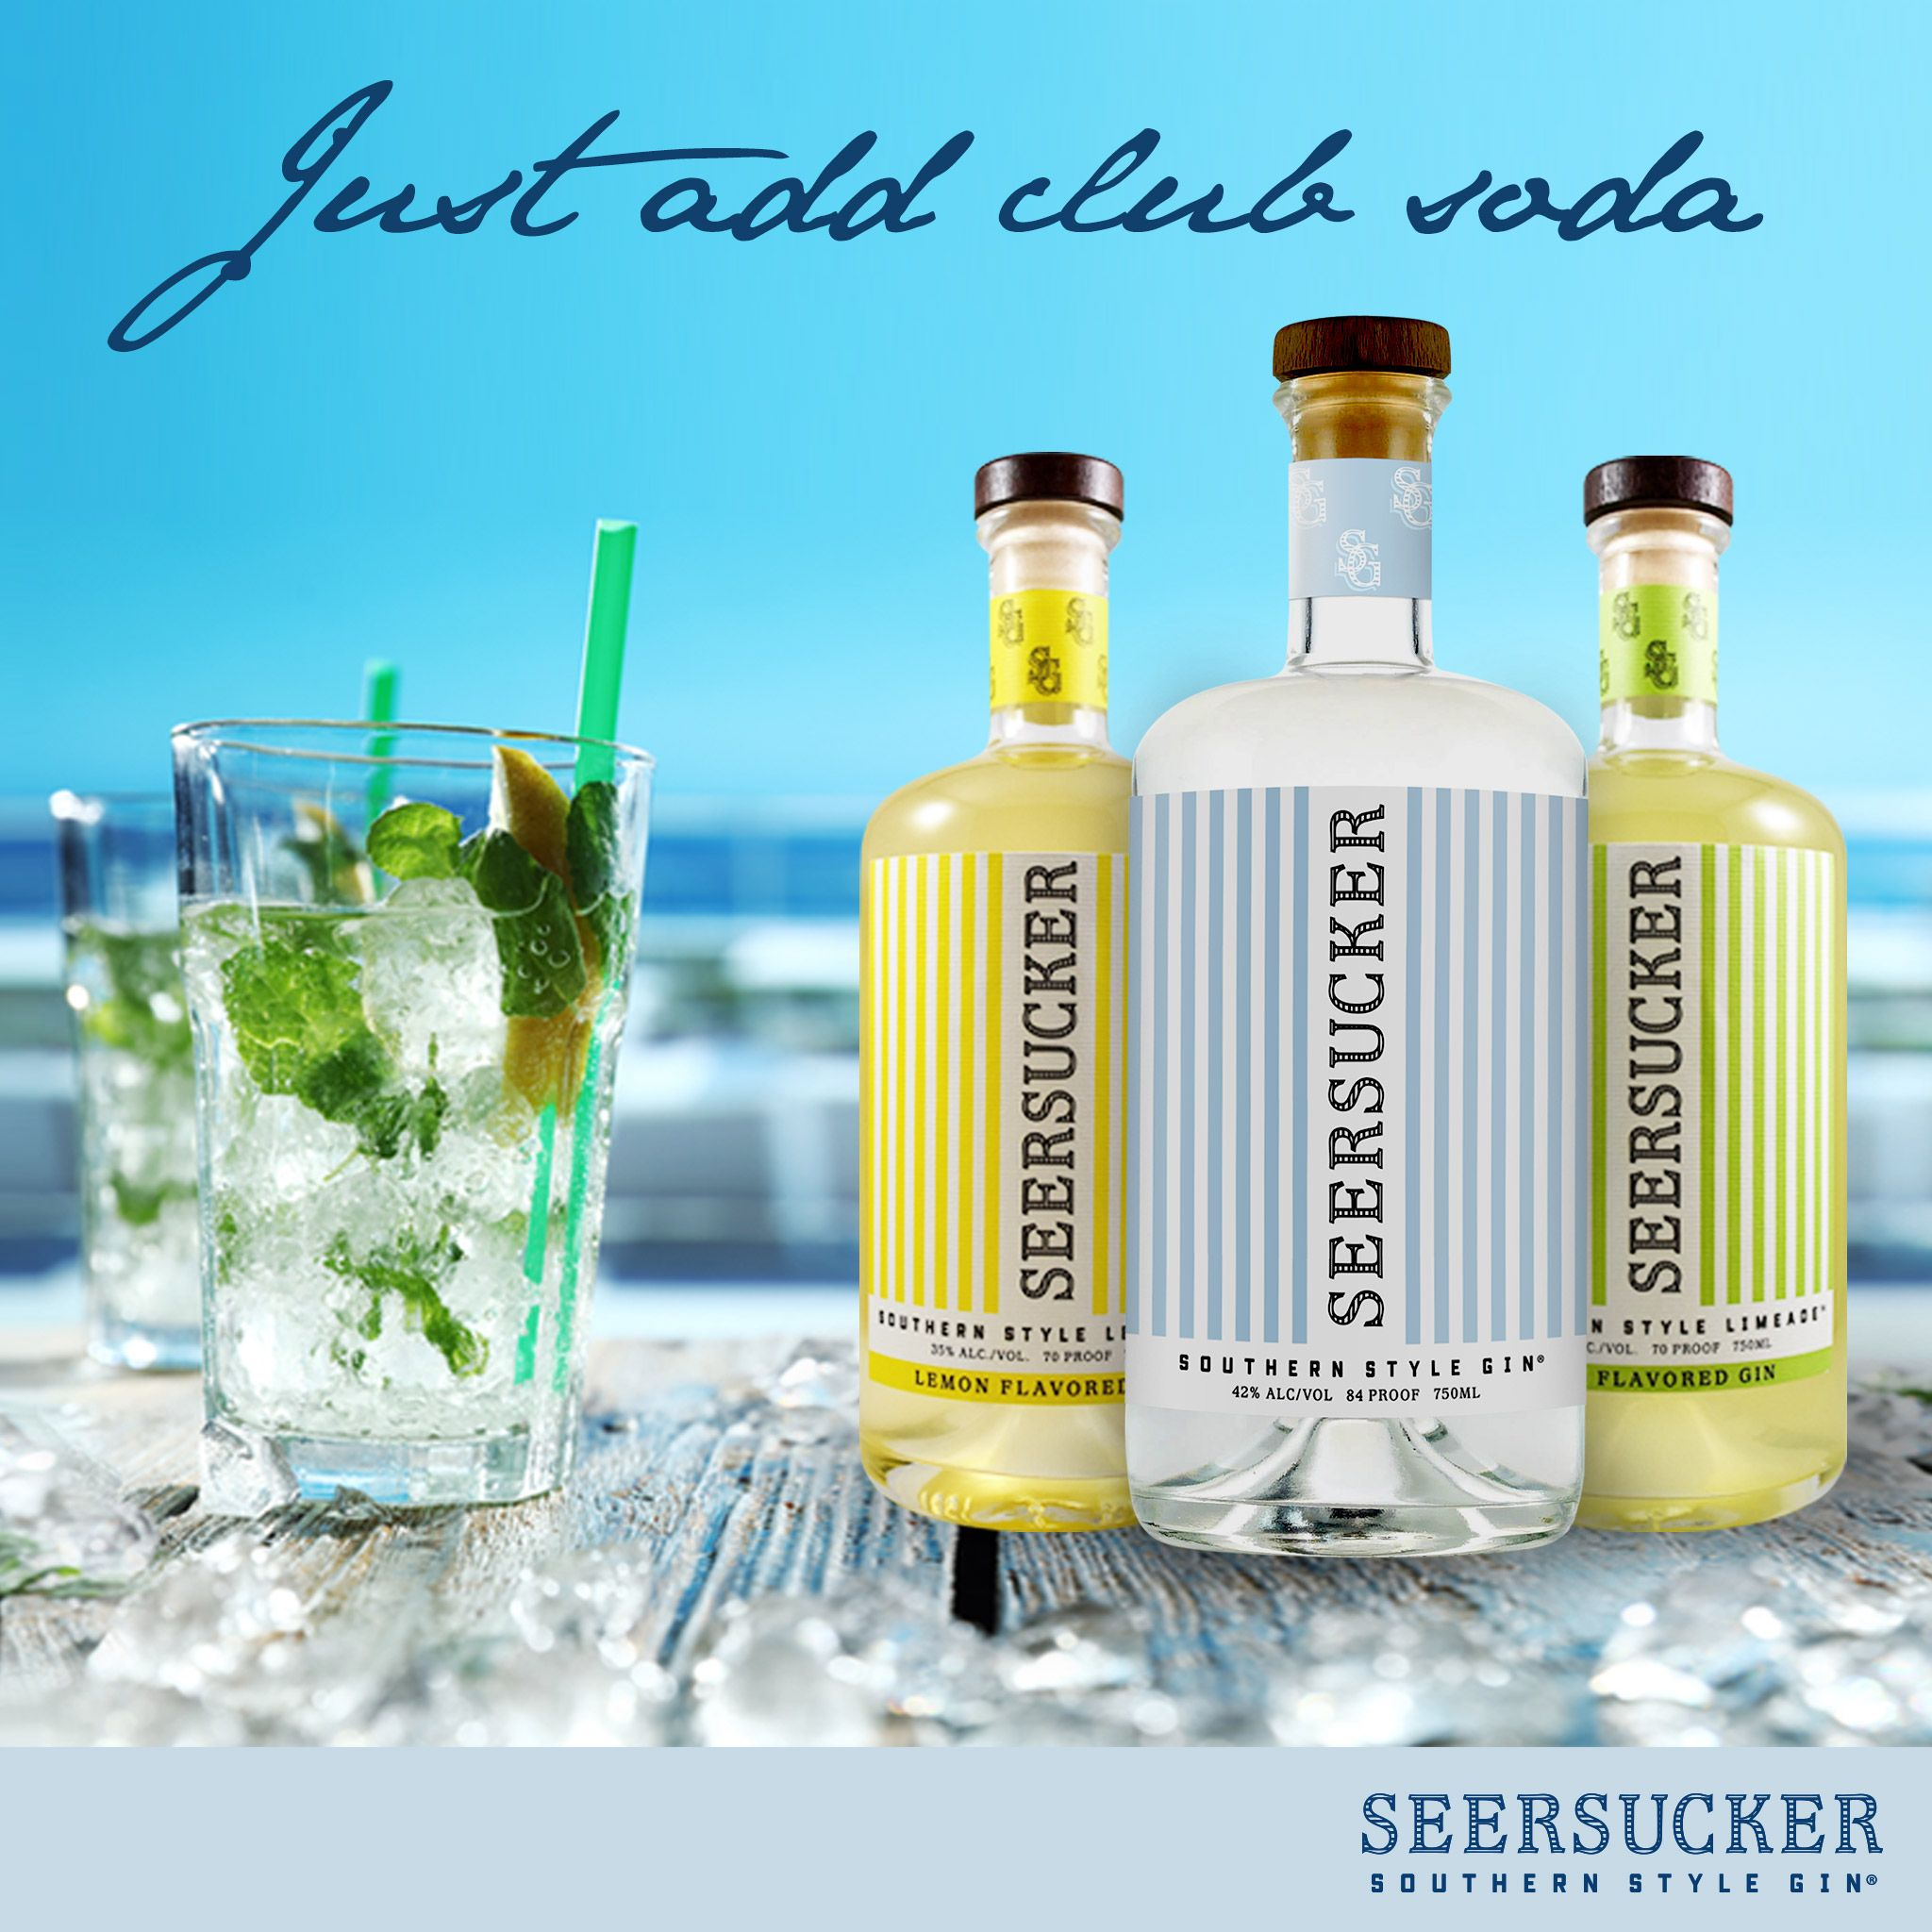 All You Need Is A Little Lime And Club Soda This Drink S So Simple It Could Make Itself Southernstylegin Cocktails Gin